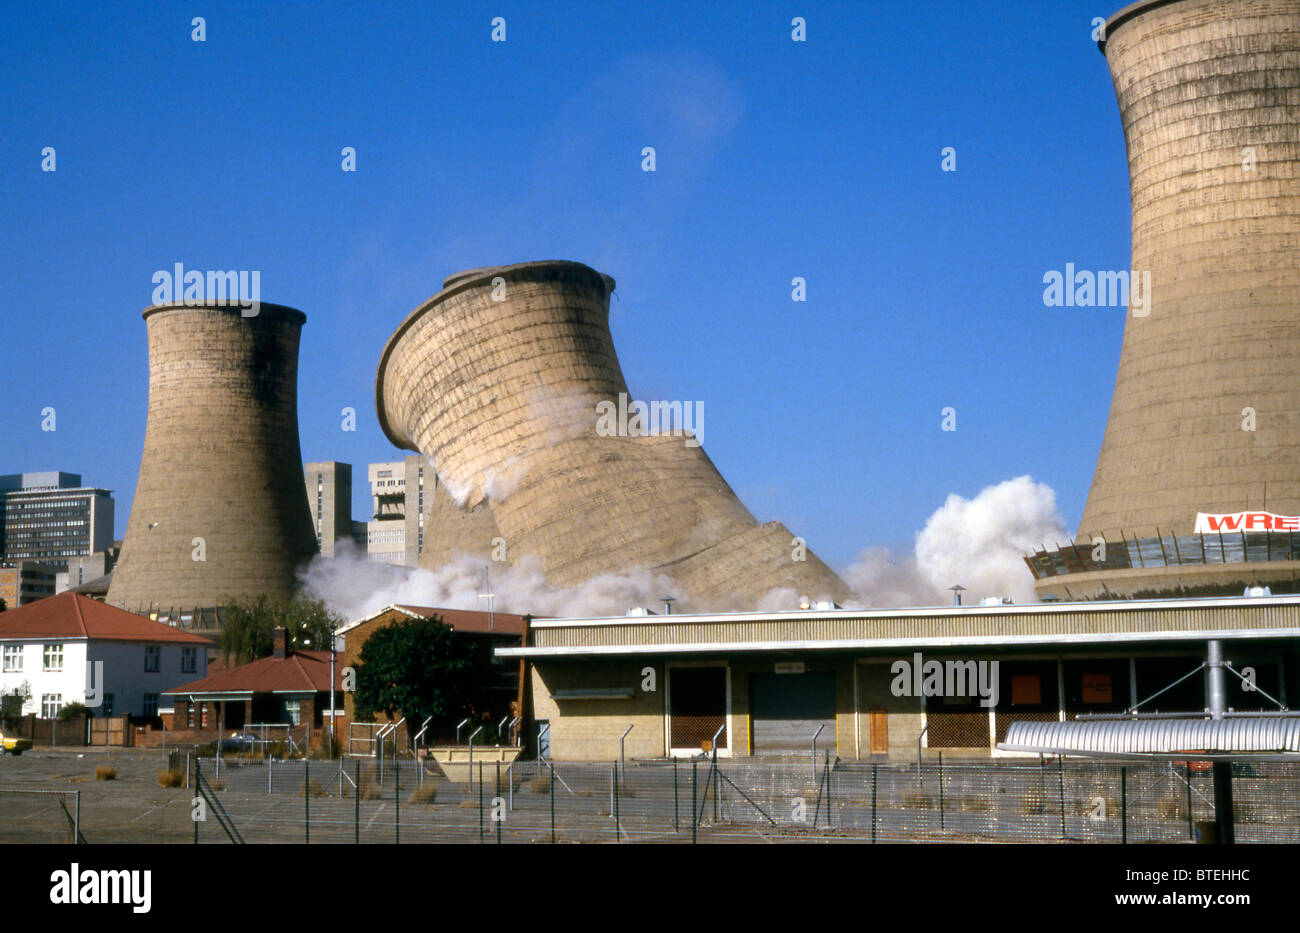 Demolition of cooling towers - Stock Image